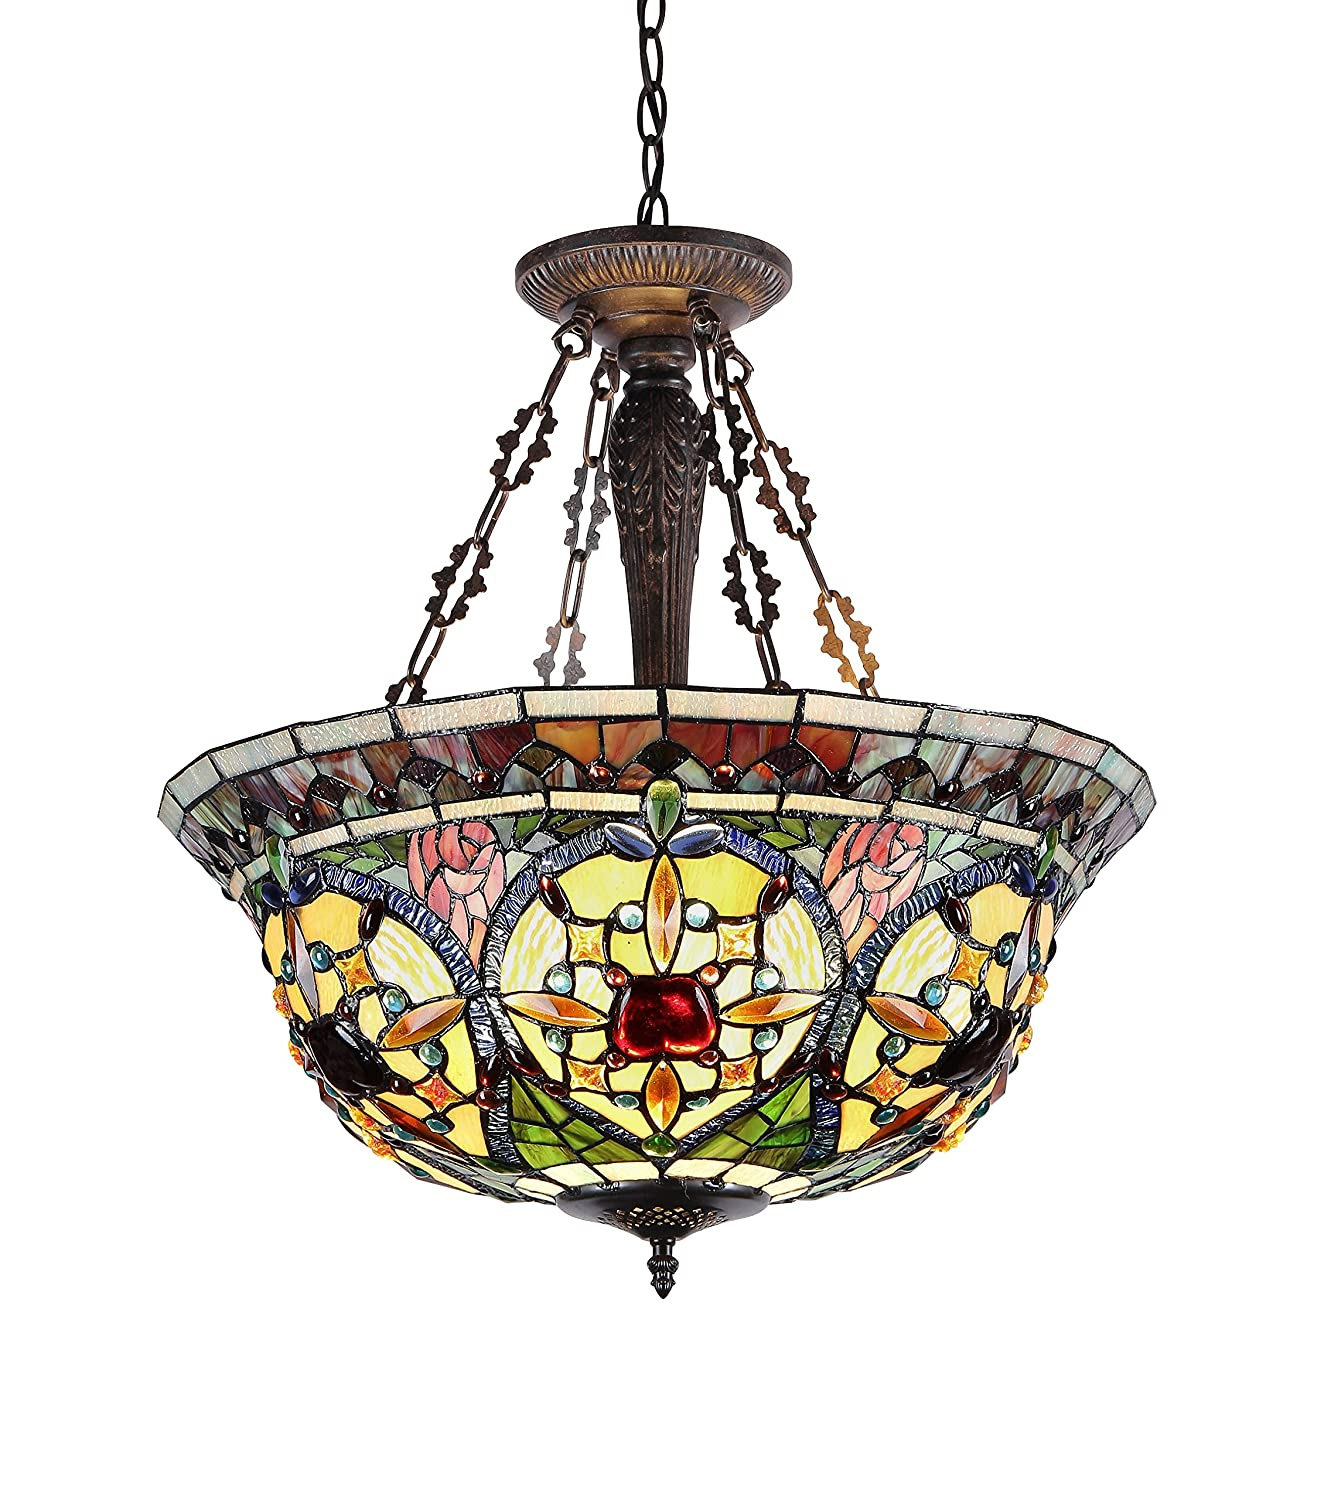 Chloe Lighting CH33391VG22-UH3 Tiffany-Style Victorian 3 Light Inverted Ceiling Pendant 22-Inch Shade, Multi-Colored